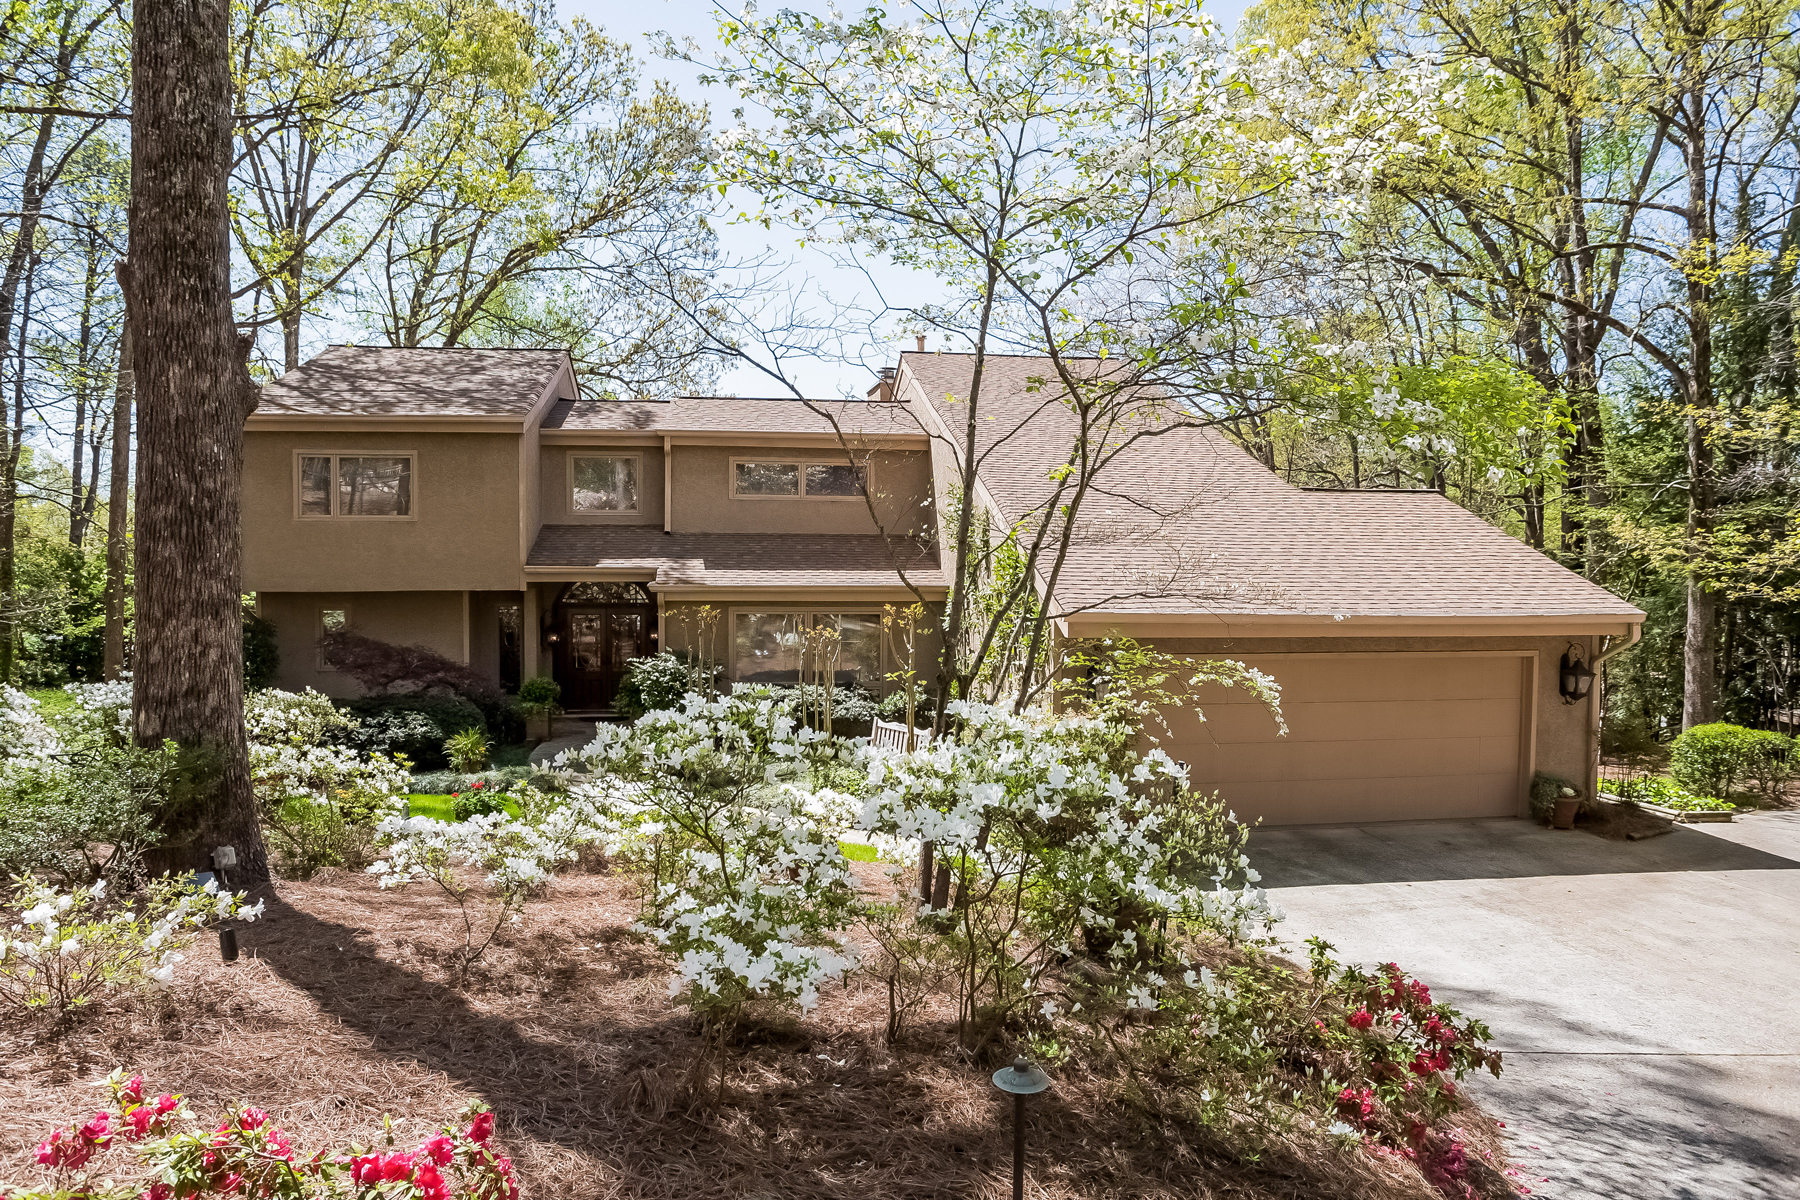 Single Family Home for Active at Beautiful Home, Located On Private Lake In Heards Ferry 12 Spring Oaks Court Sandy Springs, Georgia 30327 United States